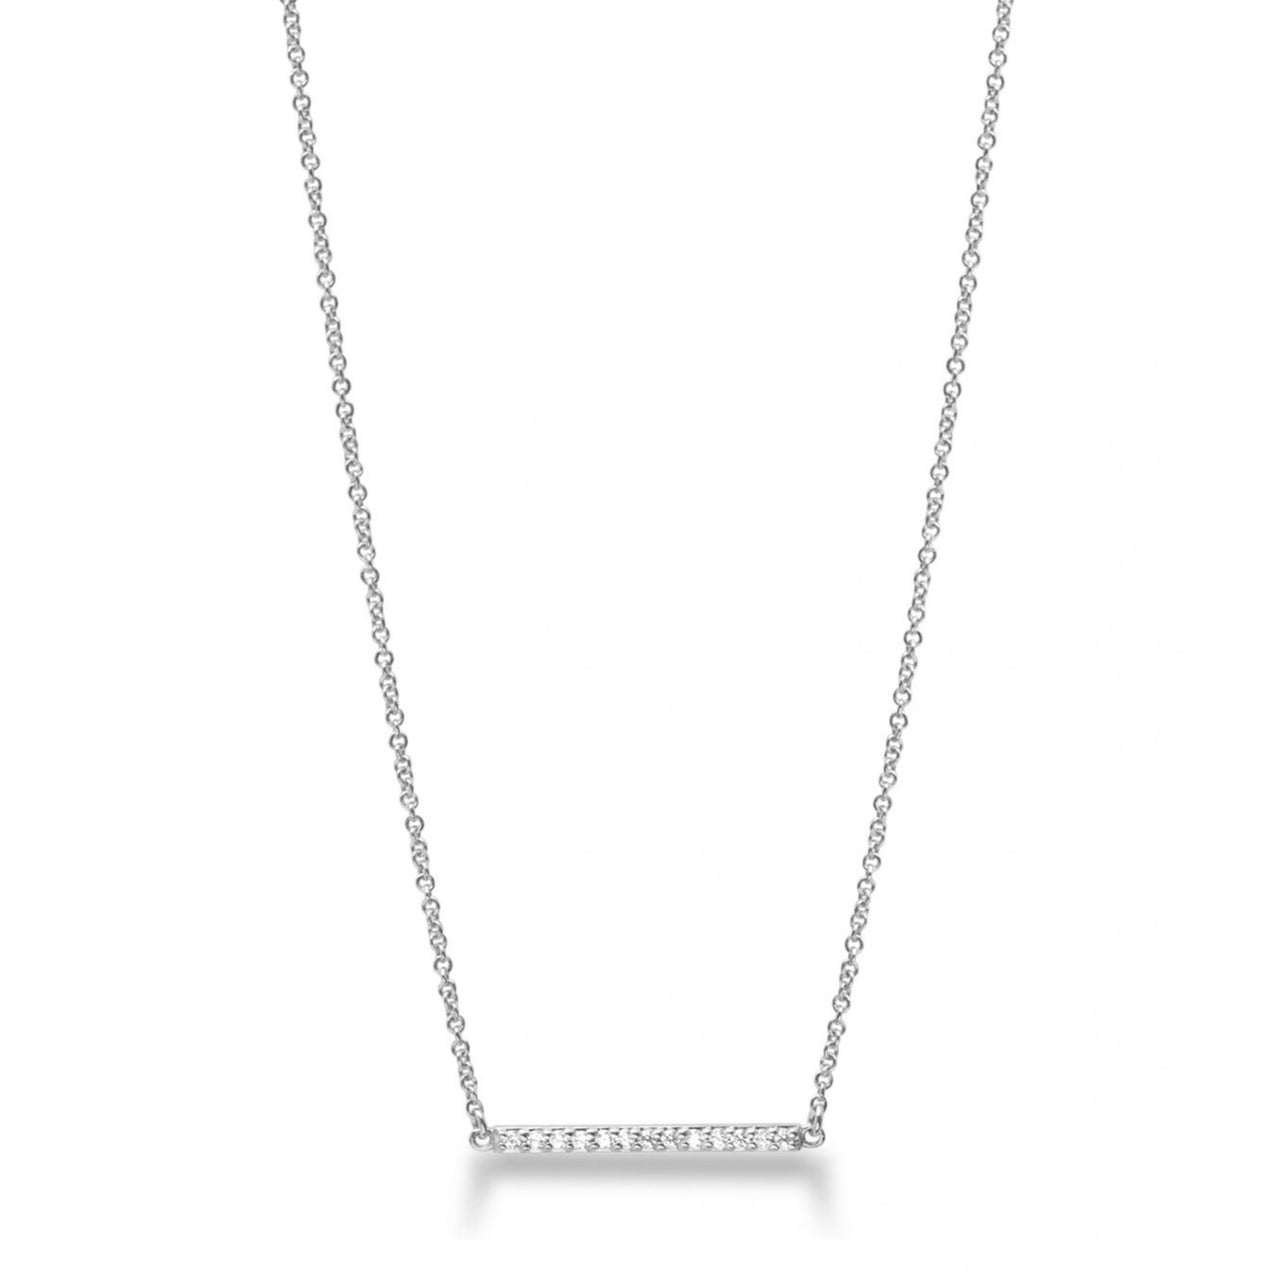 Line Necklace Silver with White Pave